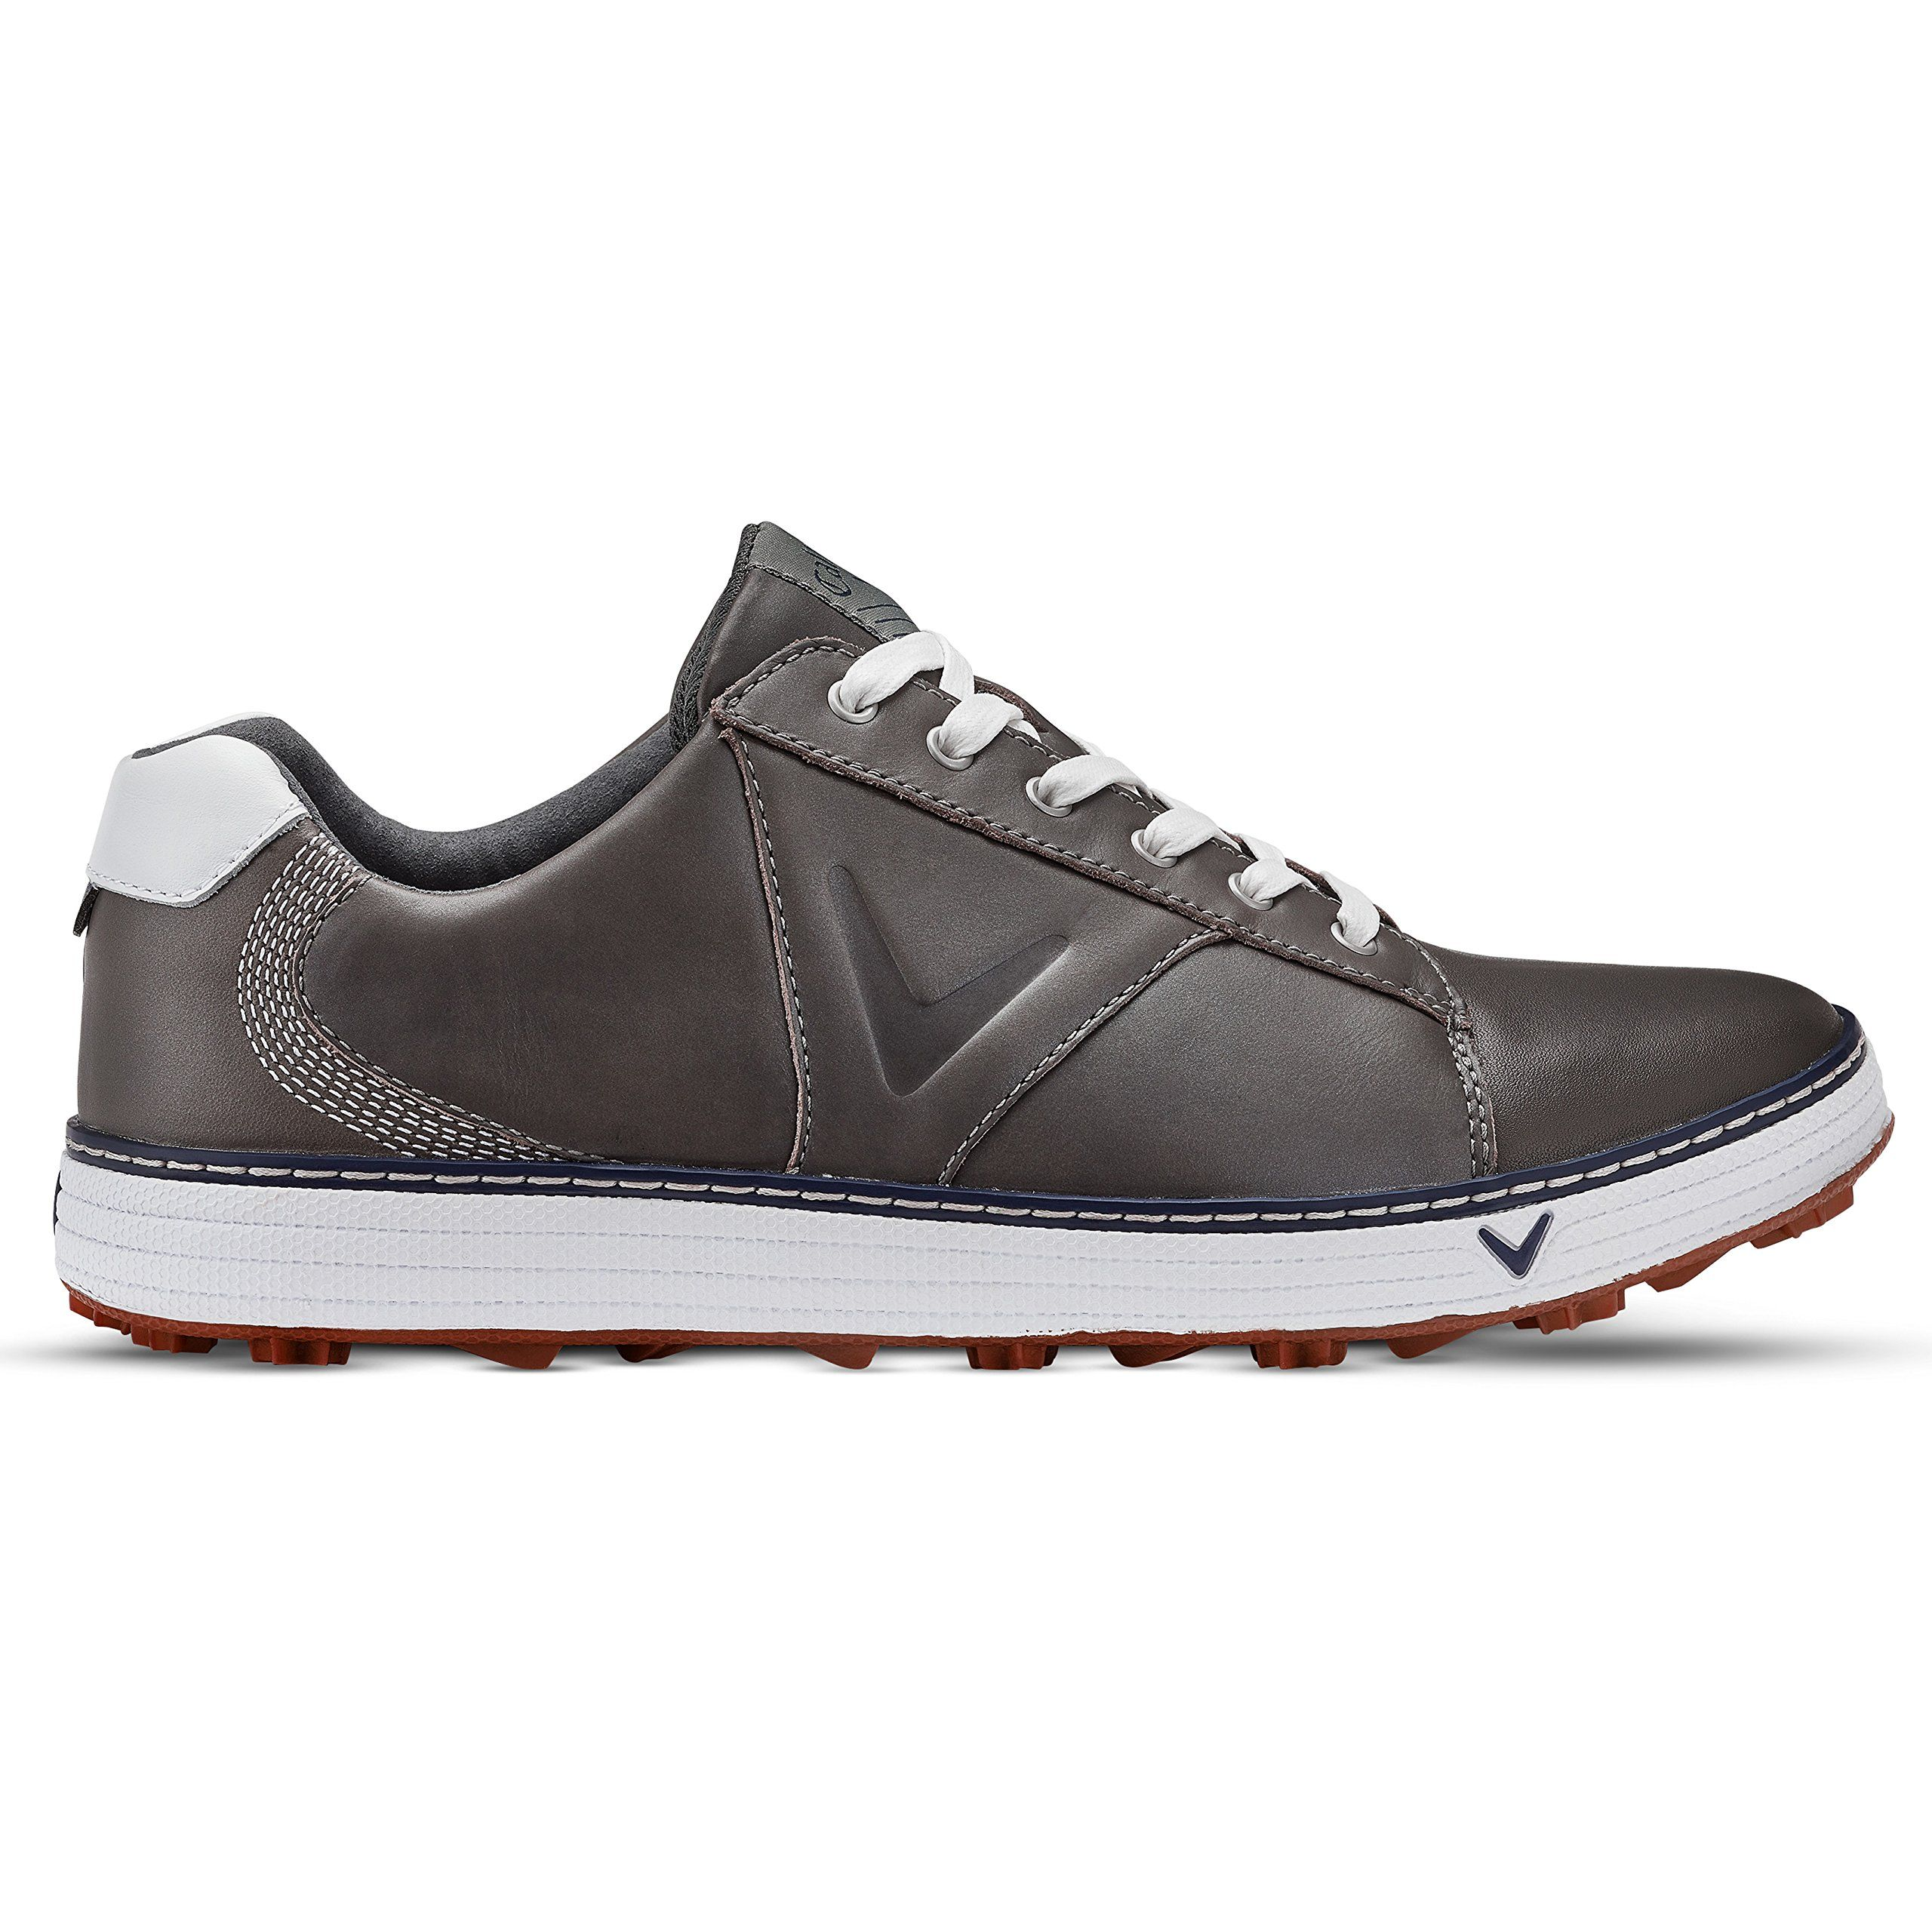 Golf Shoes Callaway Golf 2018 Mens Del Mar Series Retro Spikeless Golf Shoes Grey 8uk Check Out The P Spikeless Golf Shoes Golf Shoes Golf Outfits Women